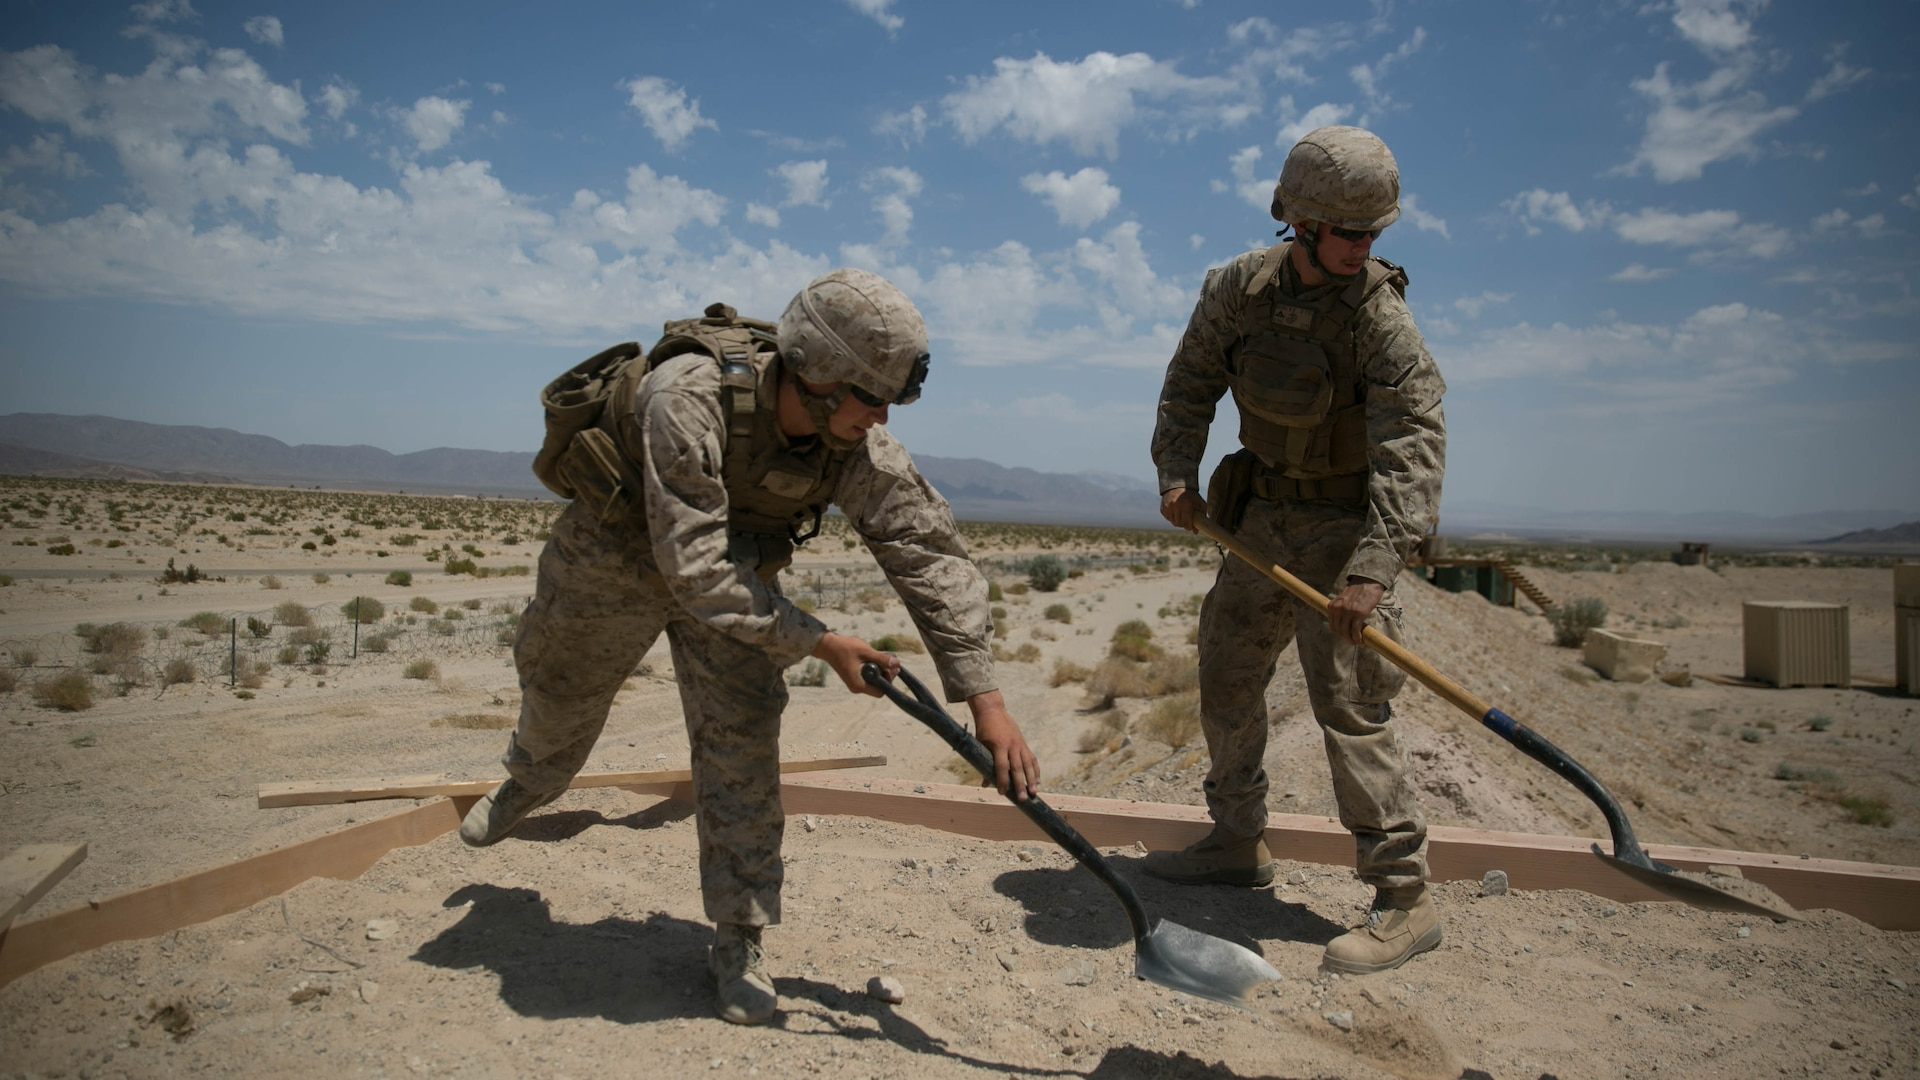 Marines with the engineer platoon for Marine Wing Support Squadron 272, construct an observation post aboard the Combat Center during Integrated Training Exercise 5-17, July 29, 2017. MWSS-272 is supporting the Aviation Combat Element of the ITX. The ACE conducts offensive, defensive, and all other air operations to support the MAGTF mission .